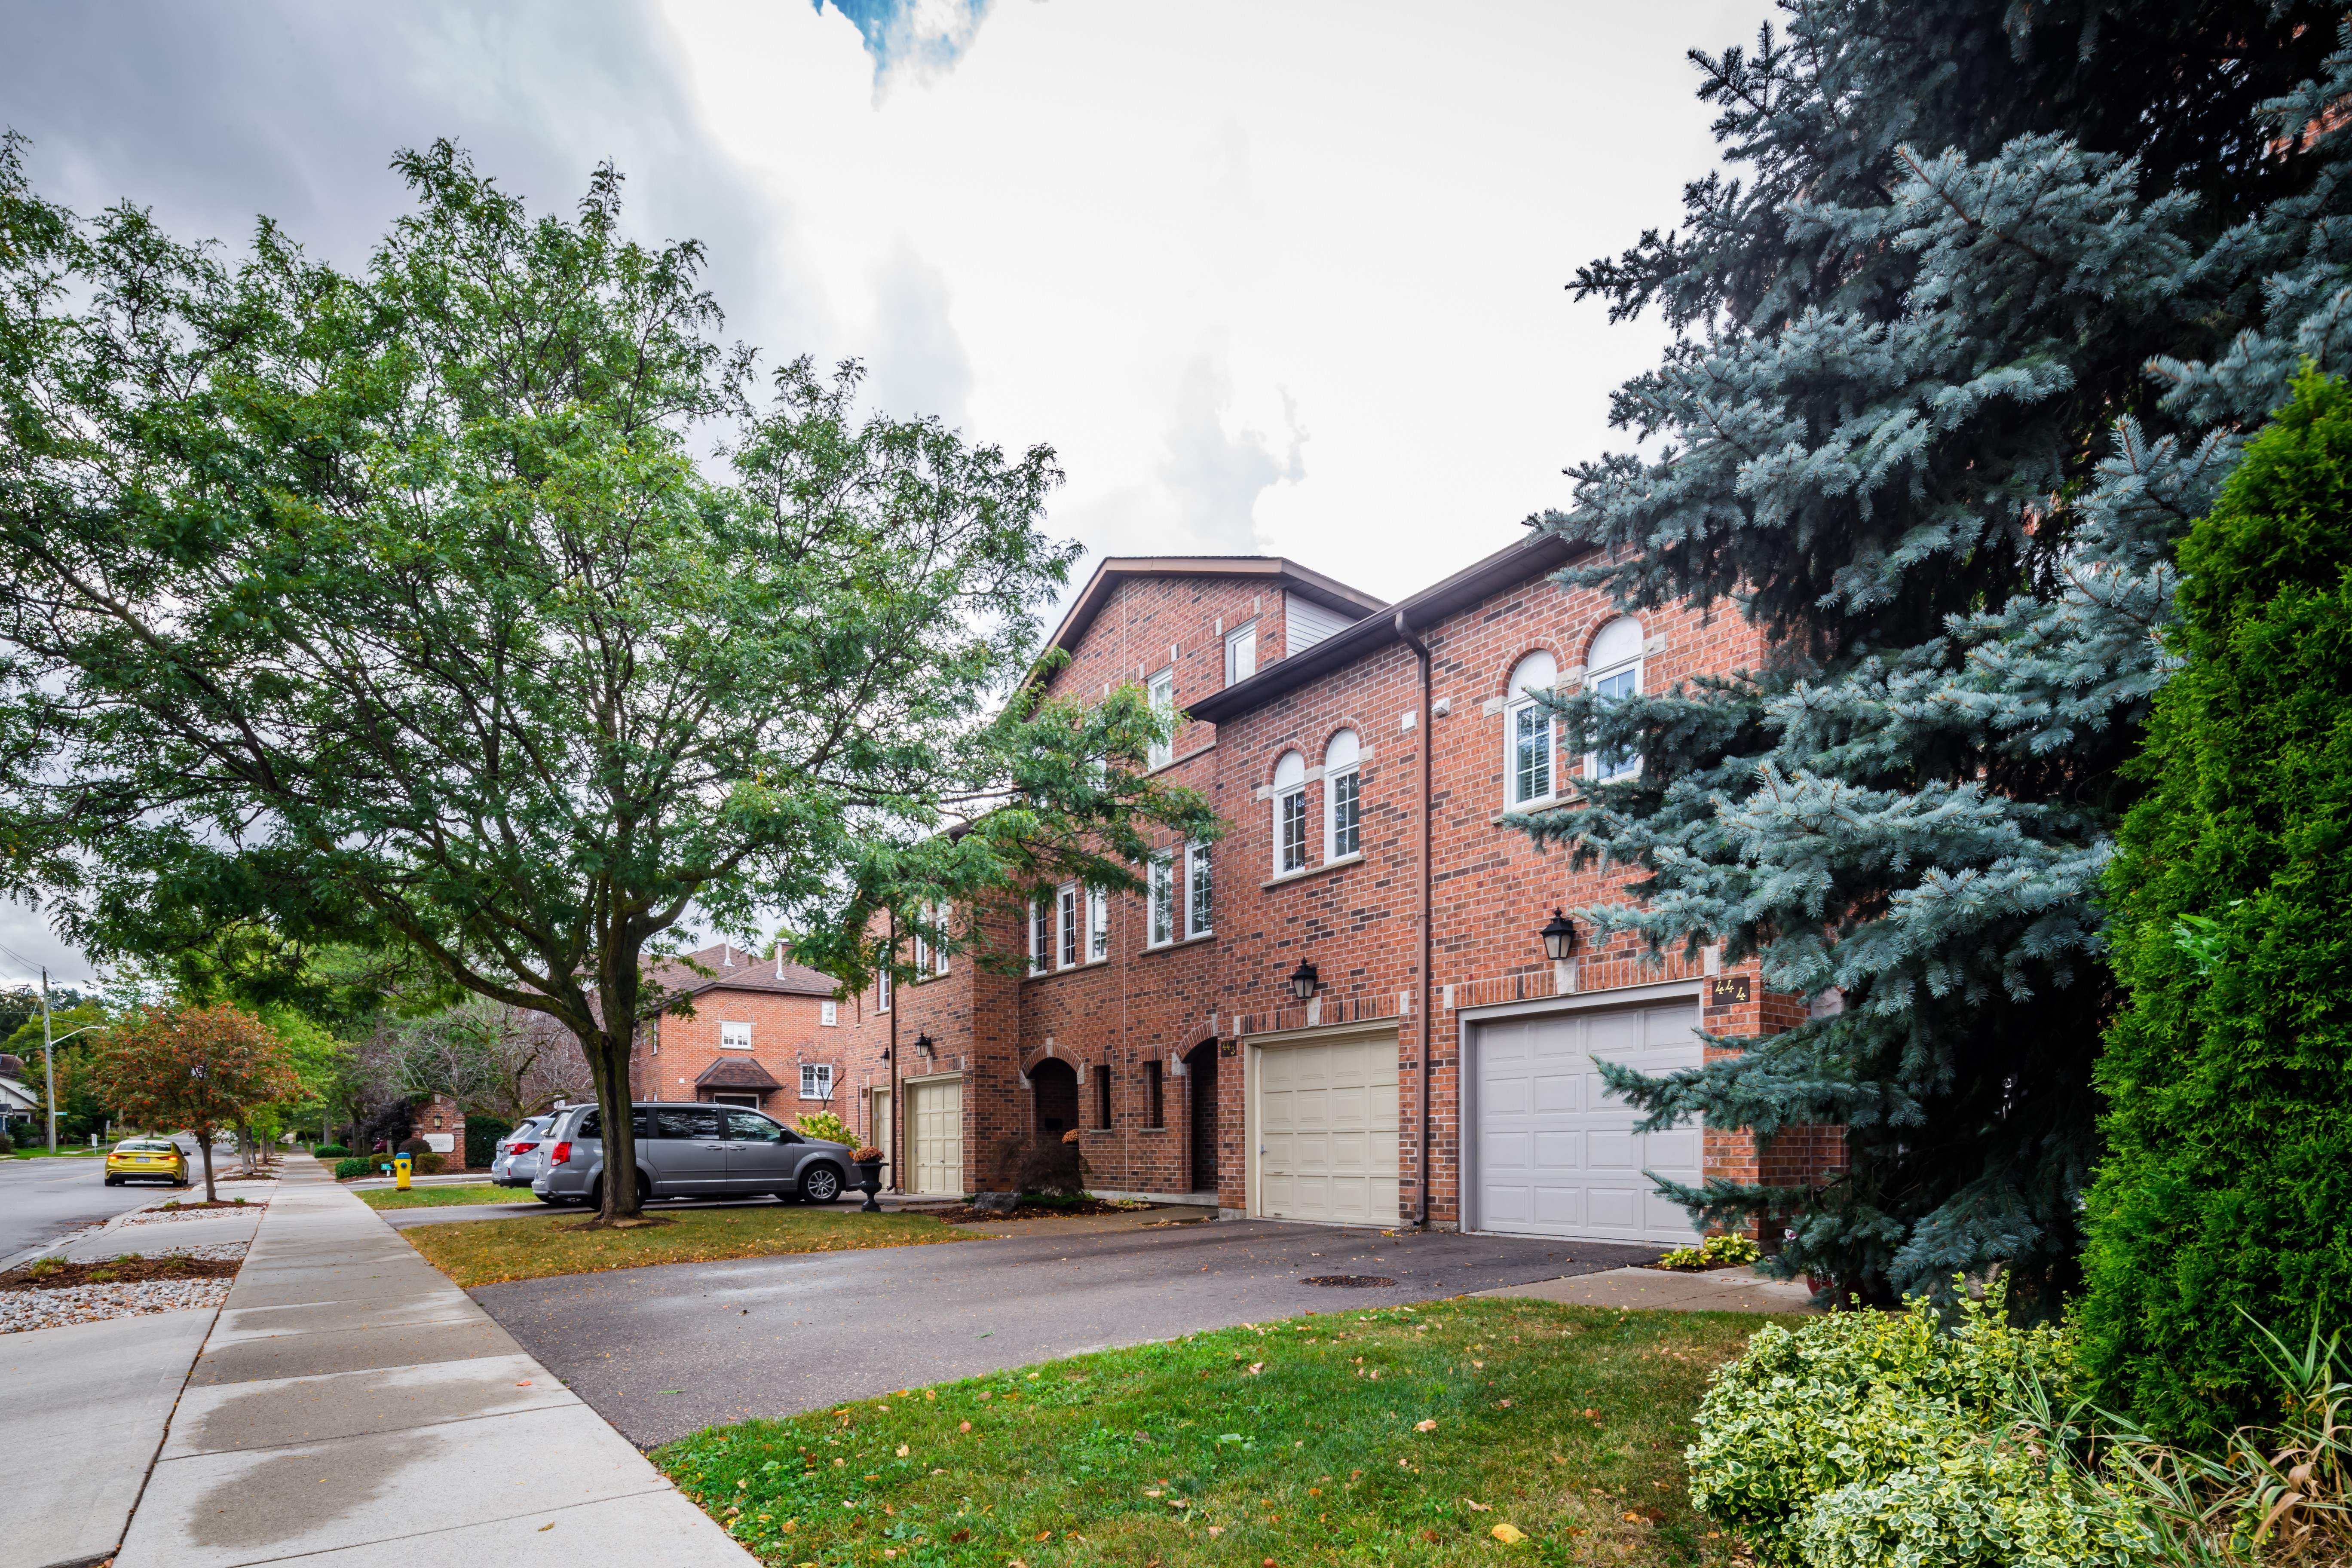 Chippendale Common at 60 Allen St W, Waterloo 0